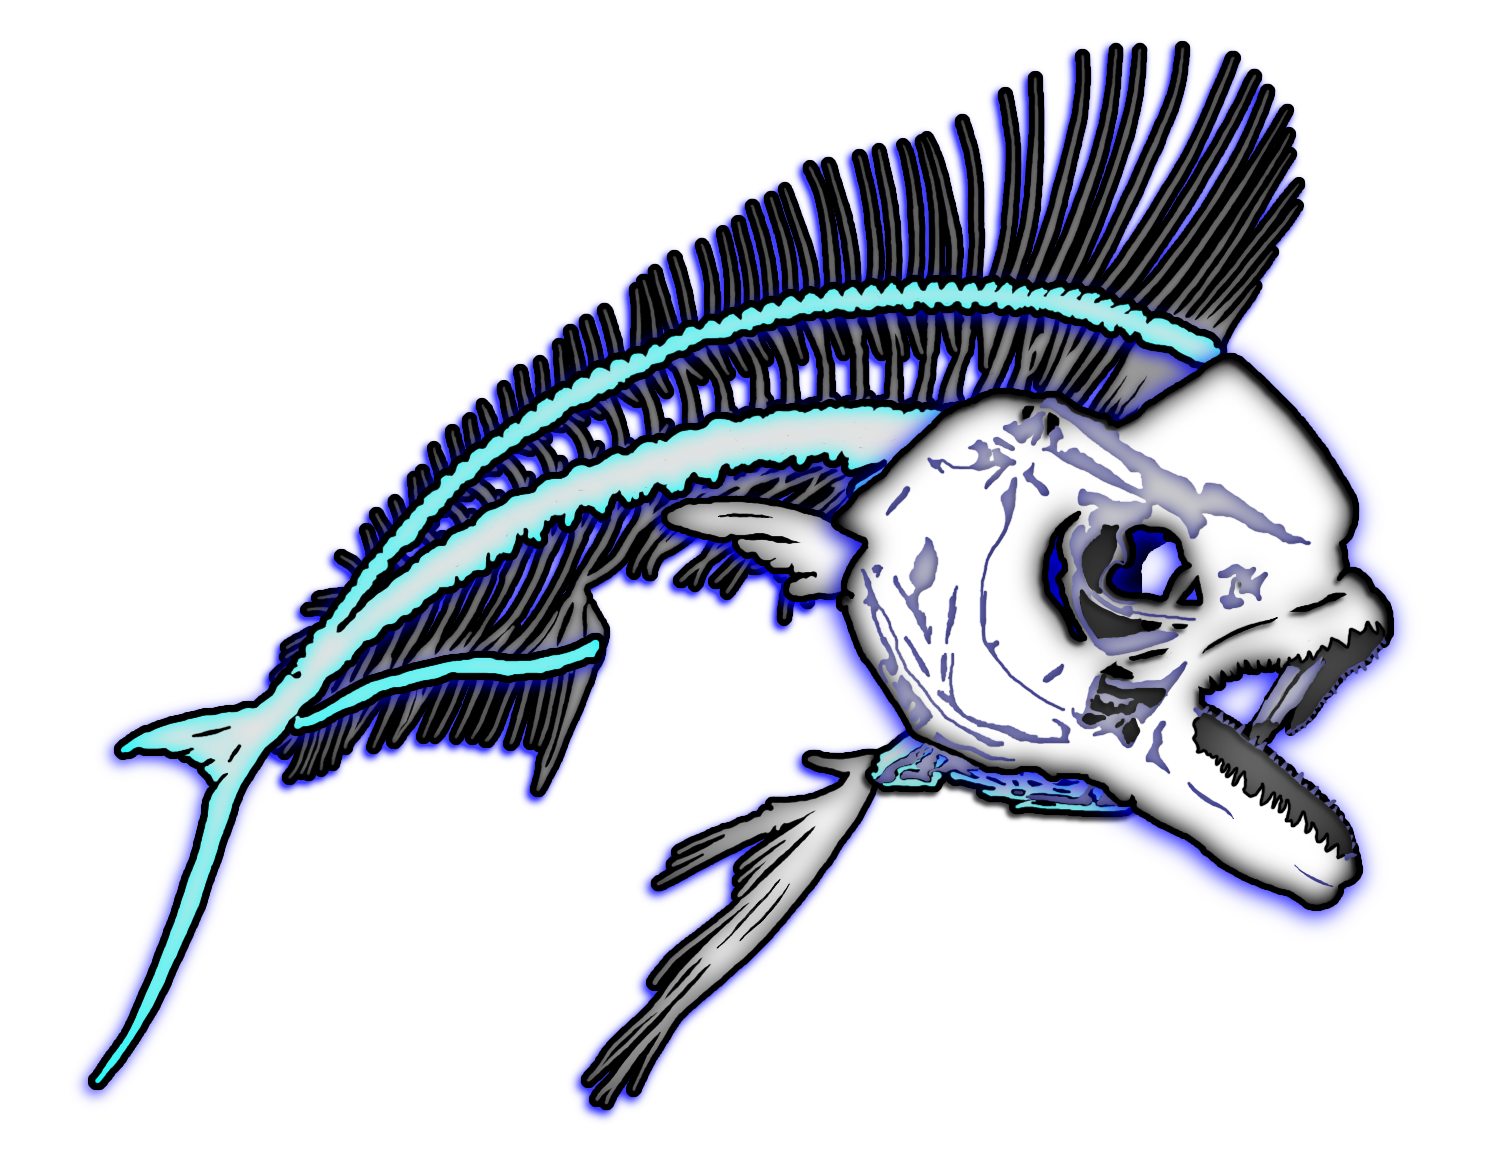 Mahi Mahi Fish Bones Skeleton Graphic Art Digitized From Popular Photo Transparent For Auto Window Decal Or T Shirt Apparel By Skeleton Decals Graphic Art Art